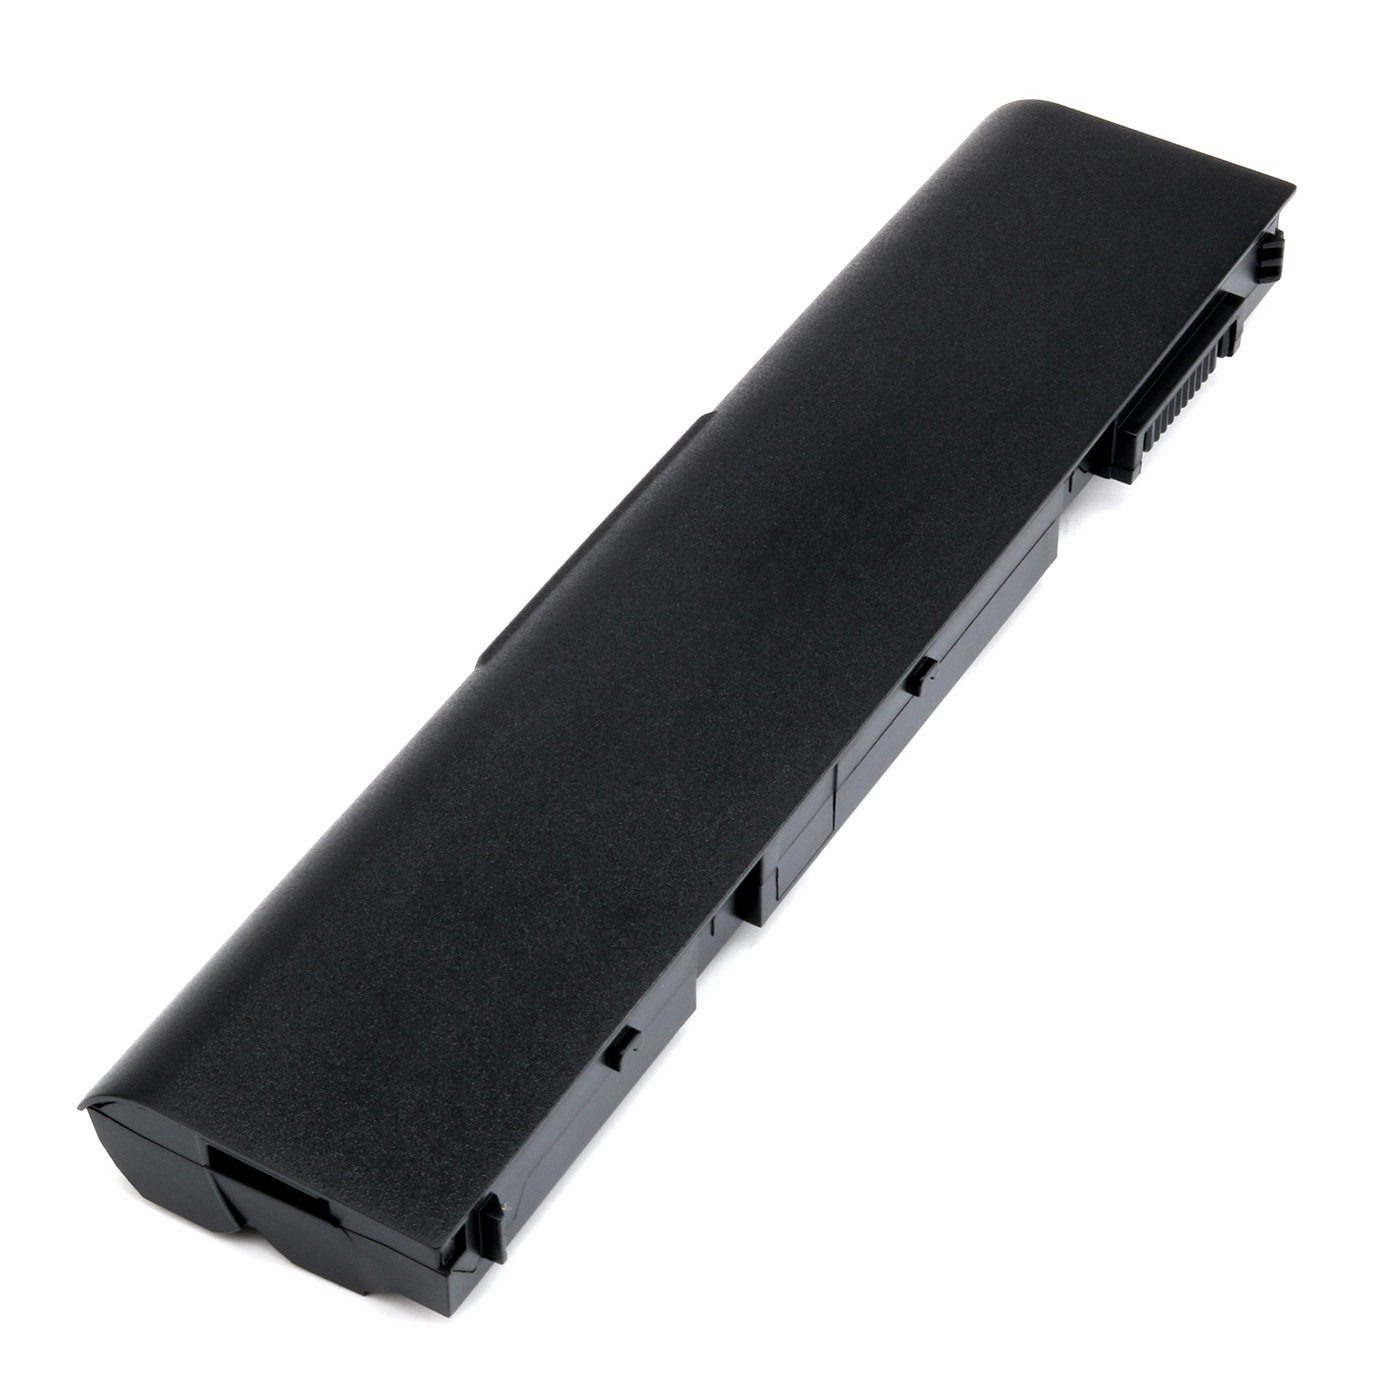 BULL-TECH 11.1V T54FJ New Laptop Battery for Dell Latitude E5420 E5520 E6420 E6520 Compatible P/N: M5Y0X 312-1163 HCJWT 7FJ92 by BULL-TECH (Image #7)